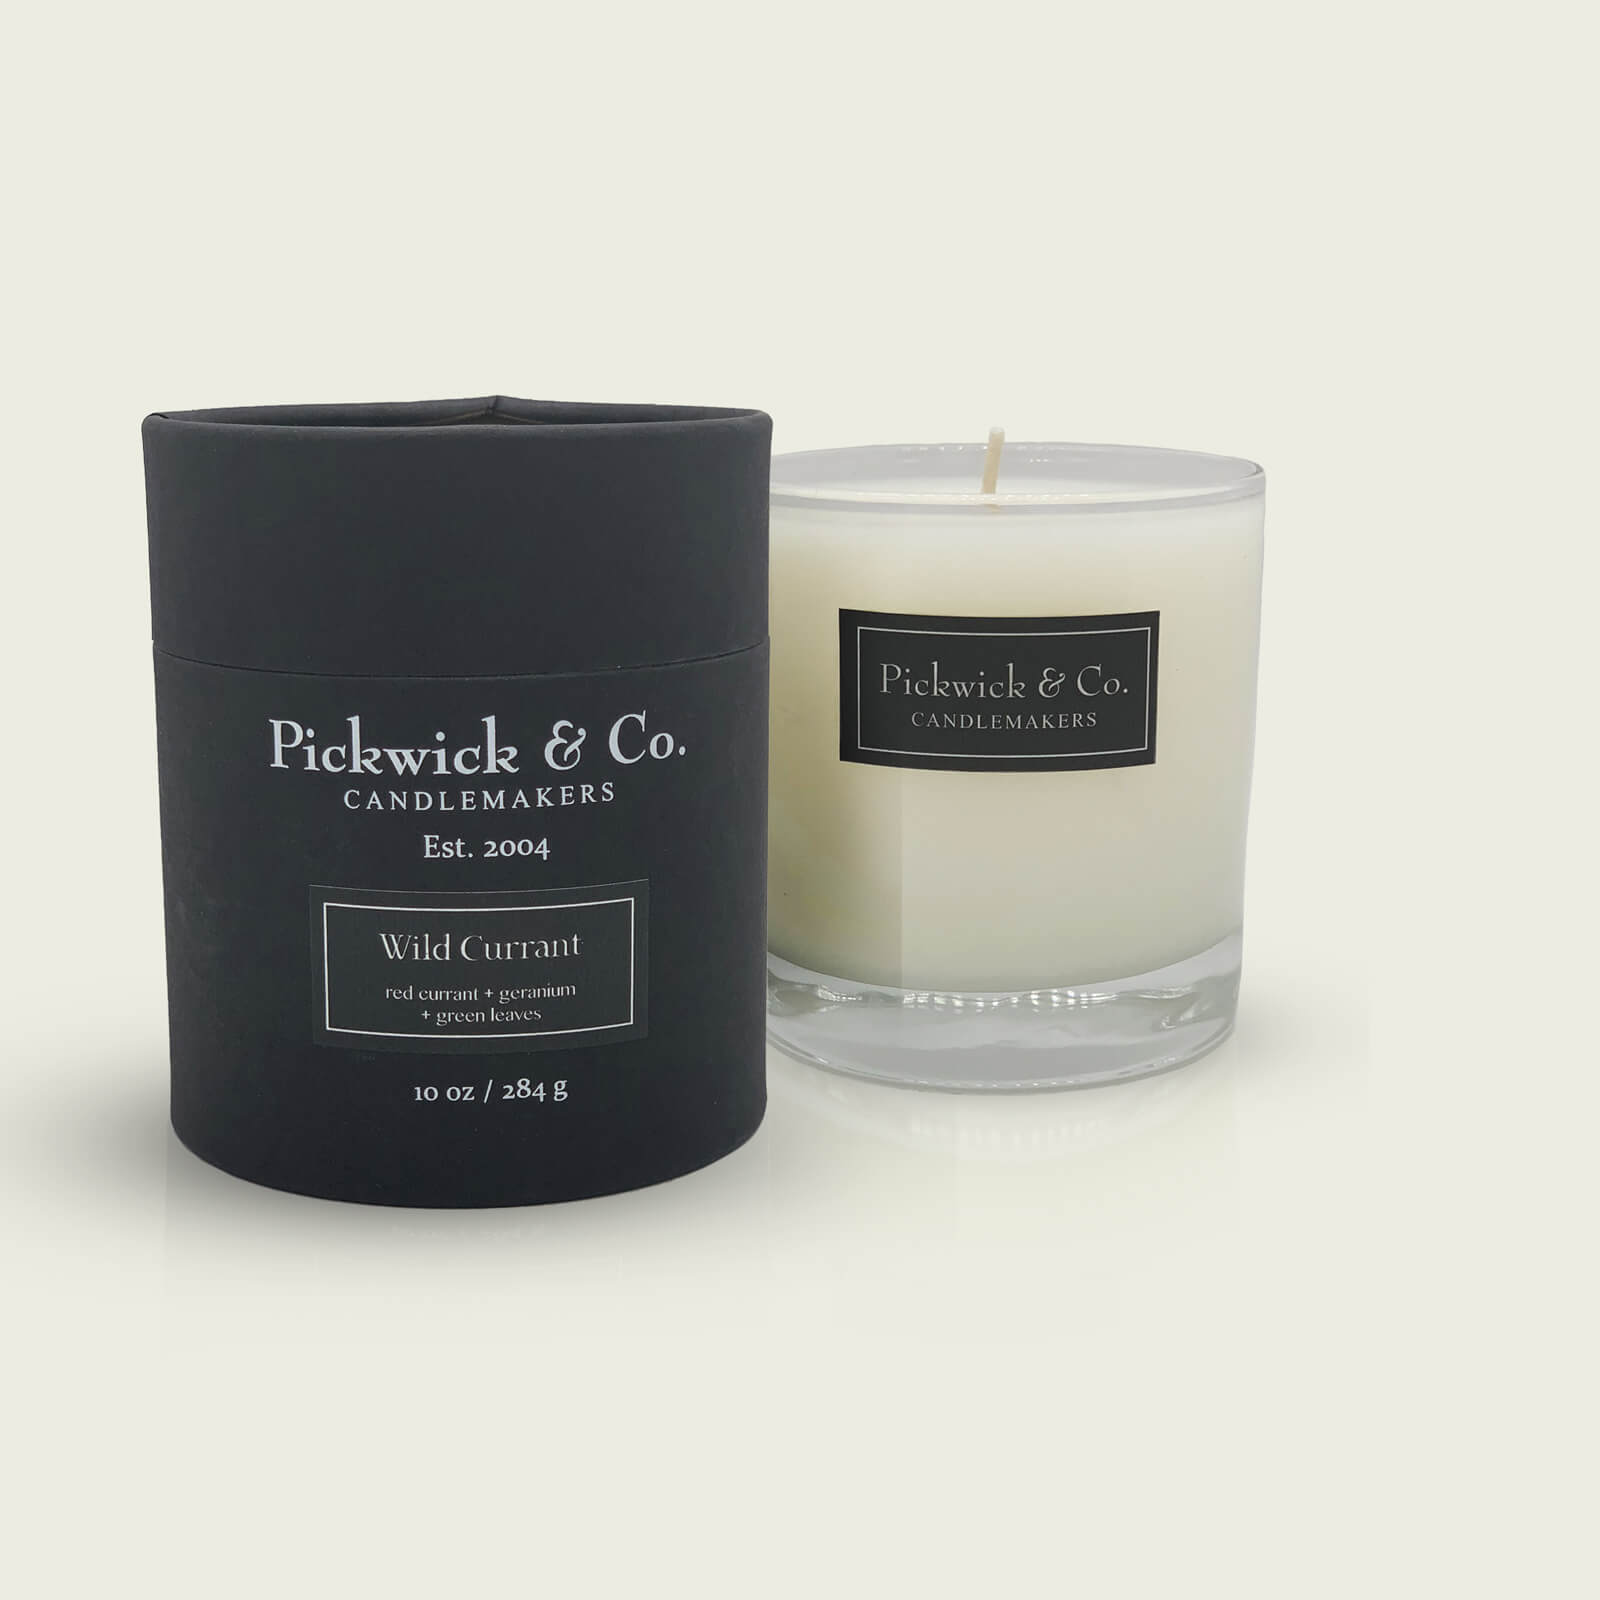 A Pickwick & Co. Candle called Wild Currant with scents of red currant, geranium and green leaves